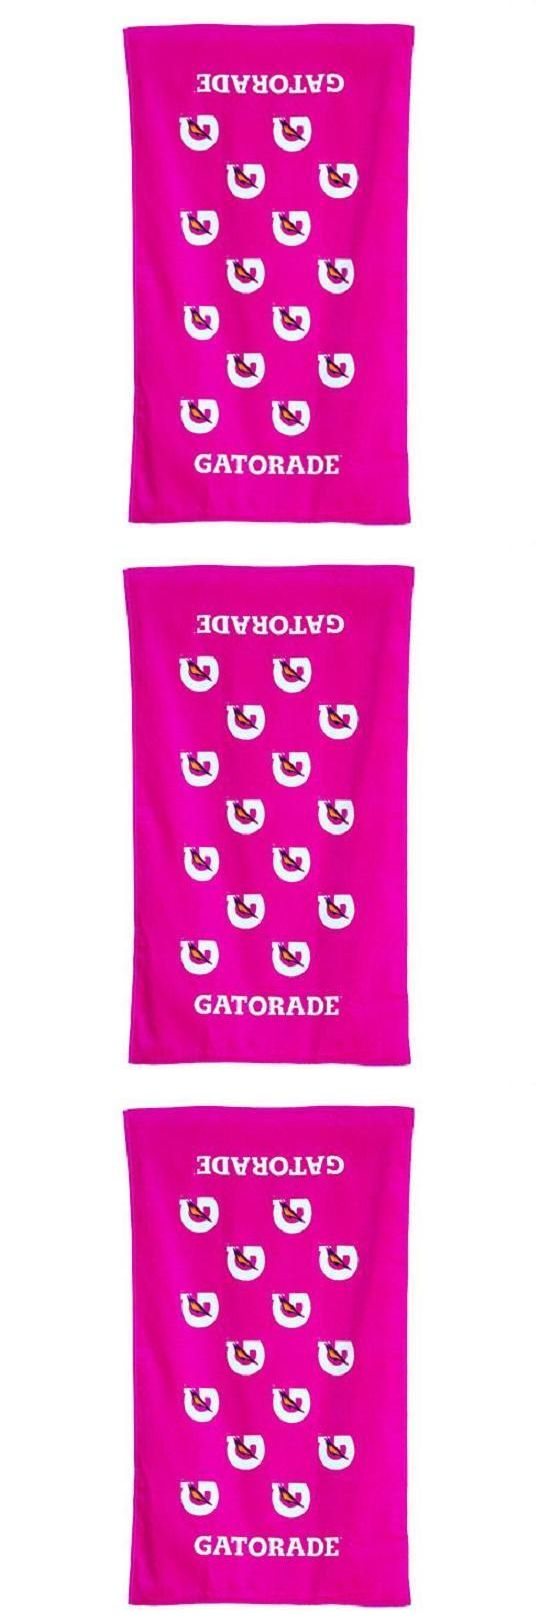 Pink Gatorade Towels October 2017